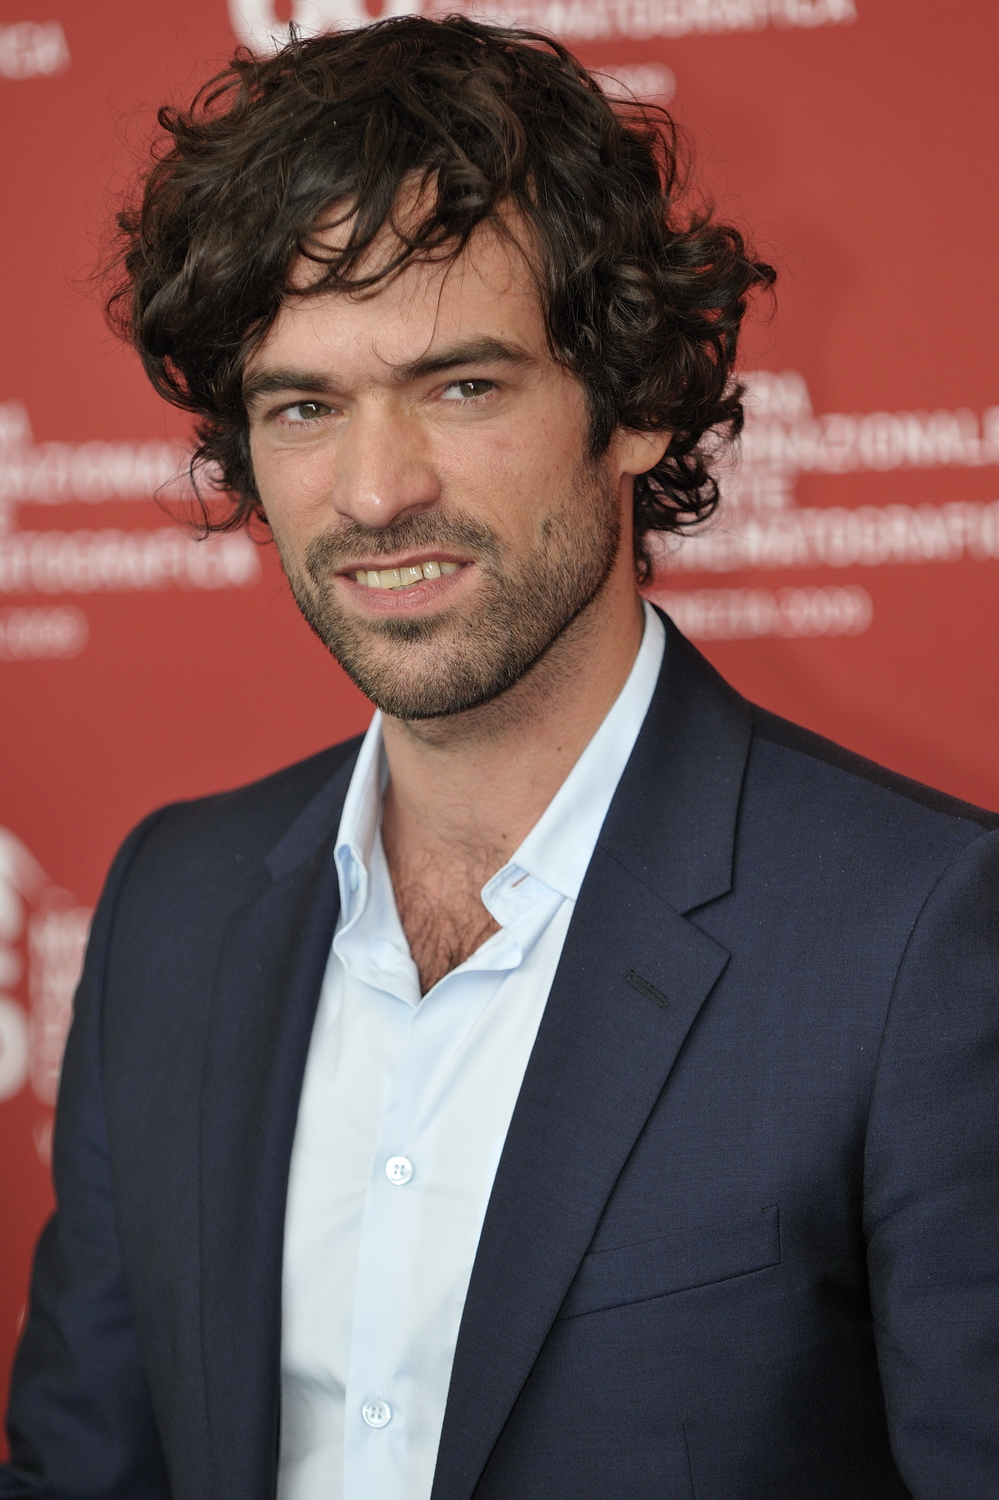 romain duris wikipedia